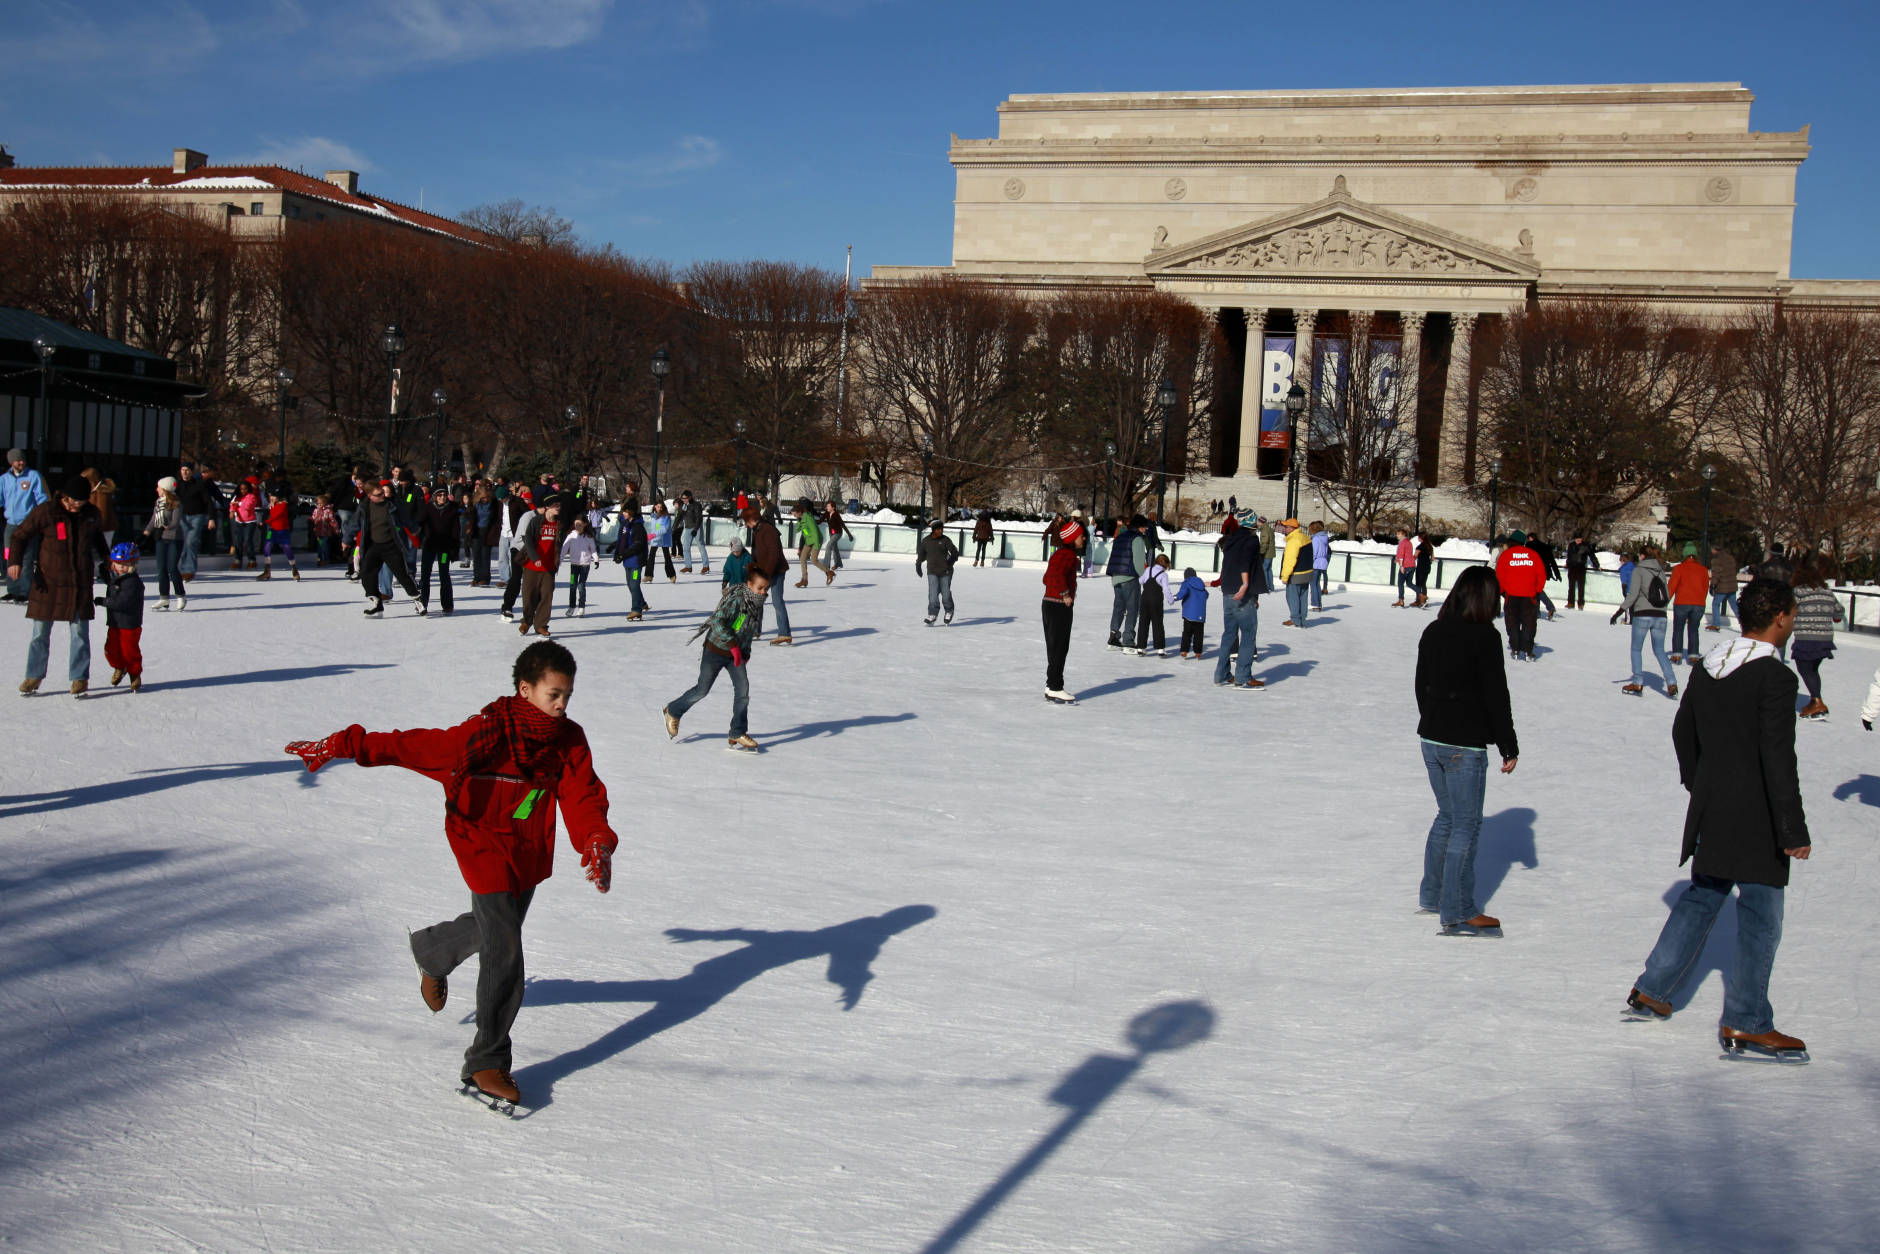 People ice skate at the National Gallery of Art's Sculpture Garden in Washington, on Thursday, Dec. 24, 2009.  (AP Photo/Jacquelyn Martin)